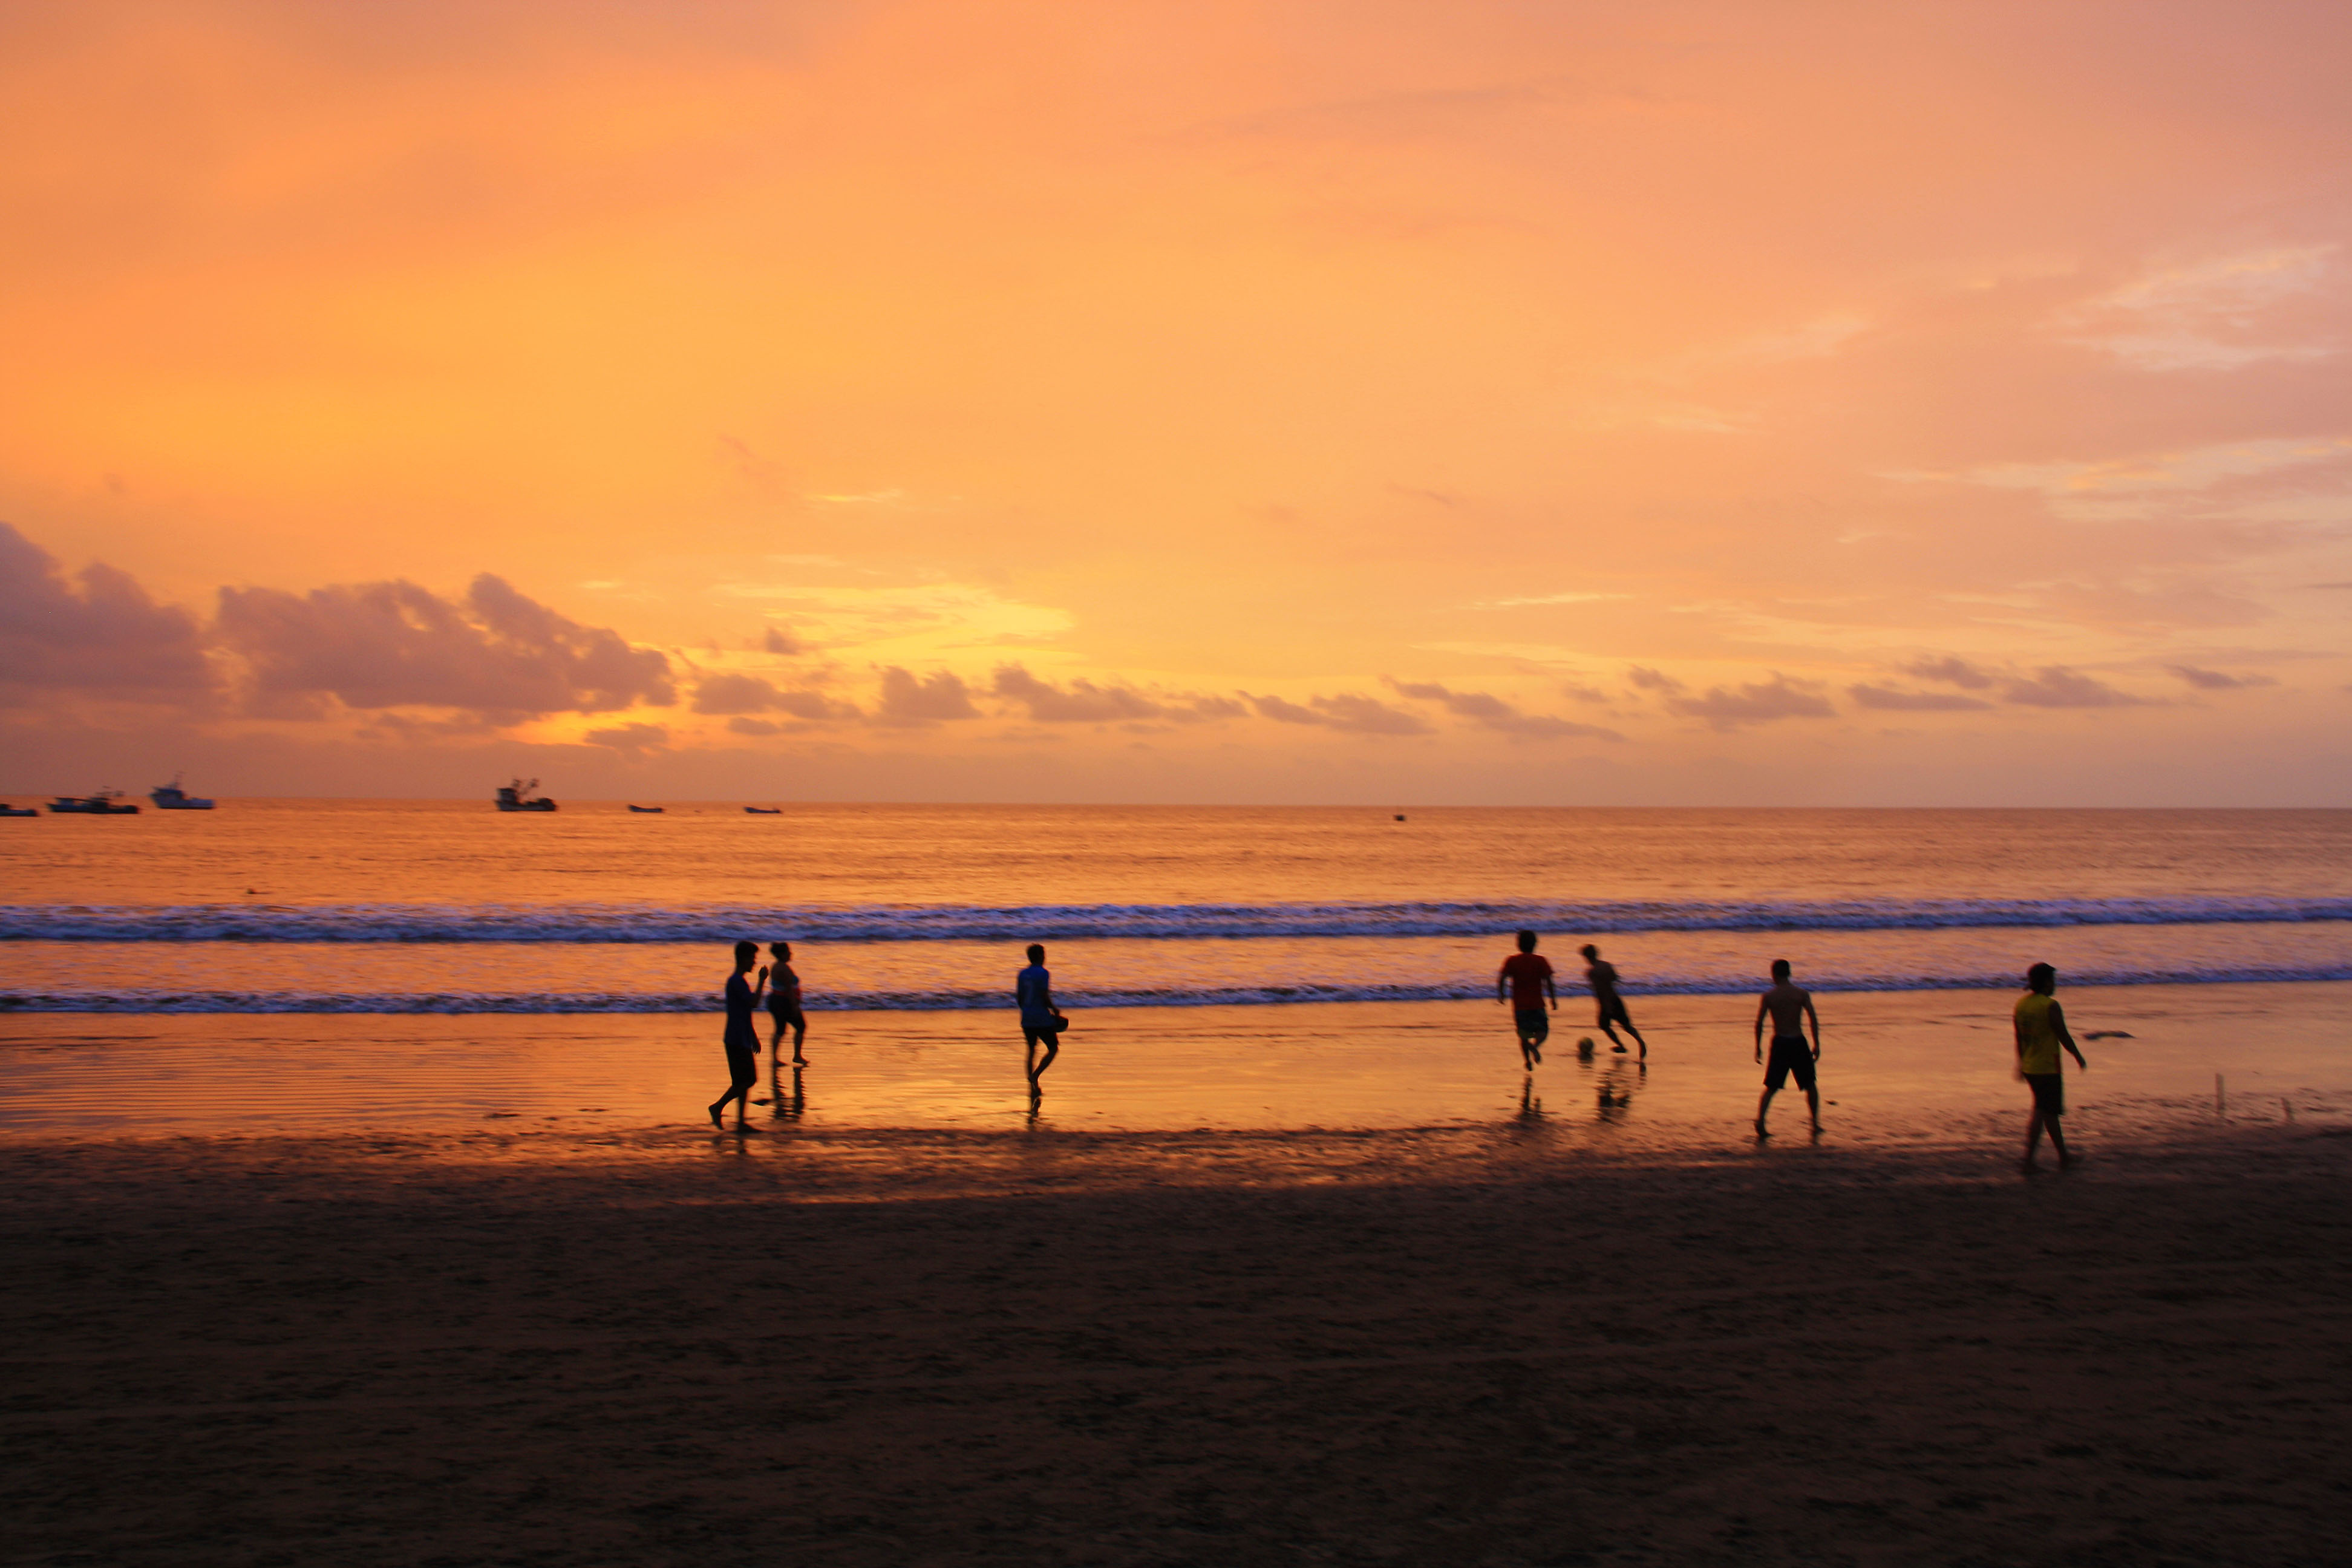 sunset soccer game on the beach